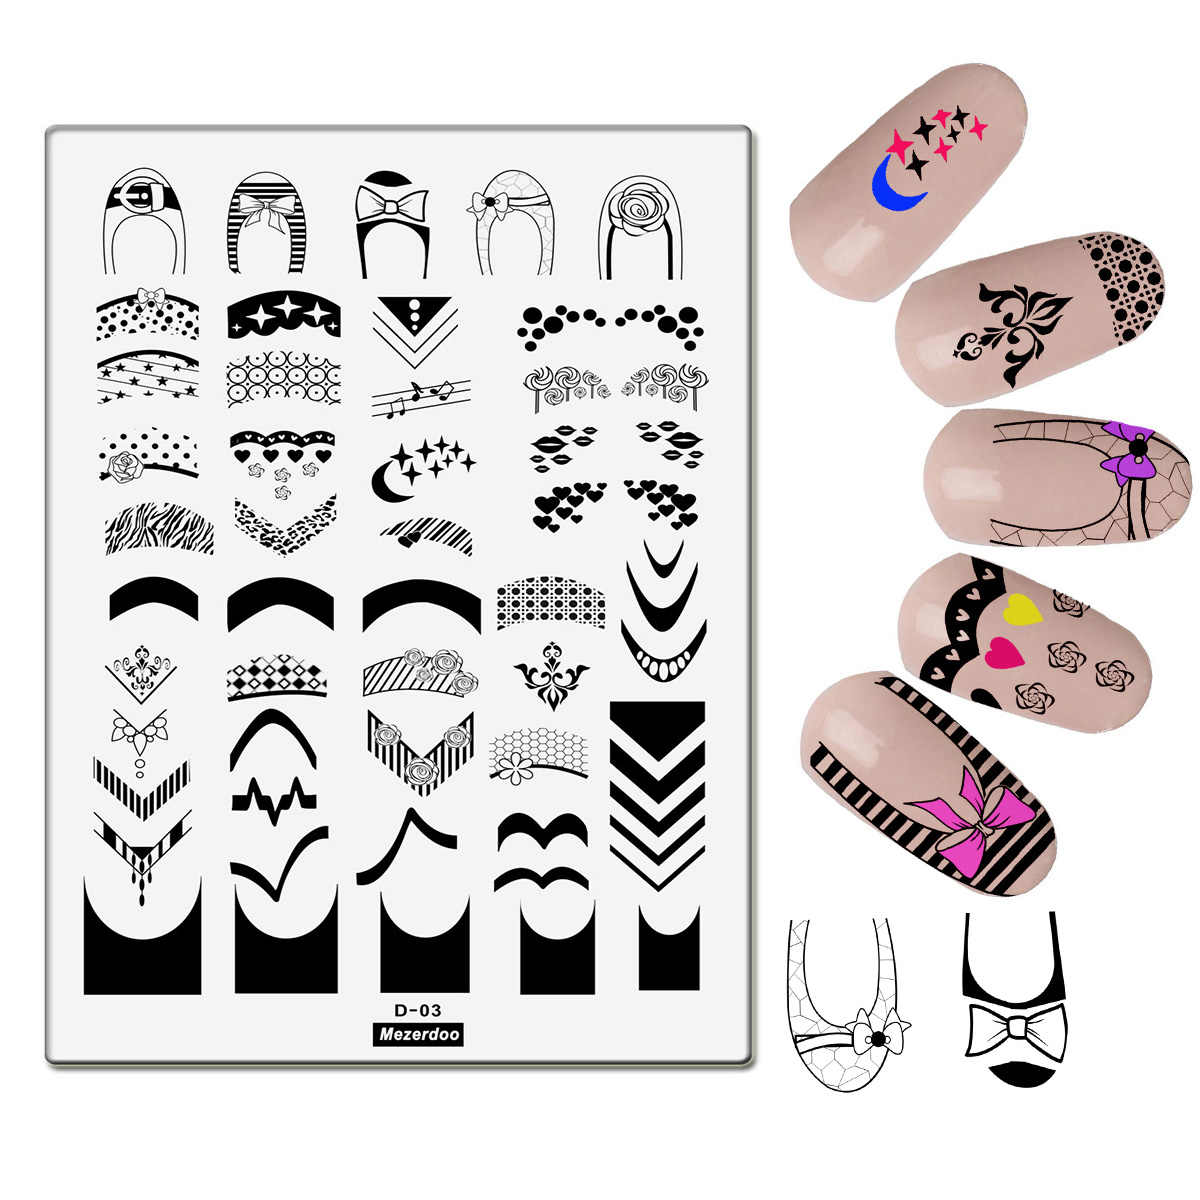 Creative Stripe Bowknot Shoes French Nail Image Plates Stamping Grid Design Diy Stencil 3d Nail Art Floral Large Size Templates